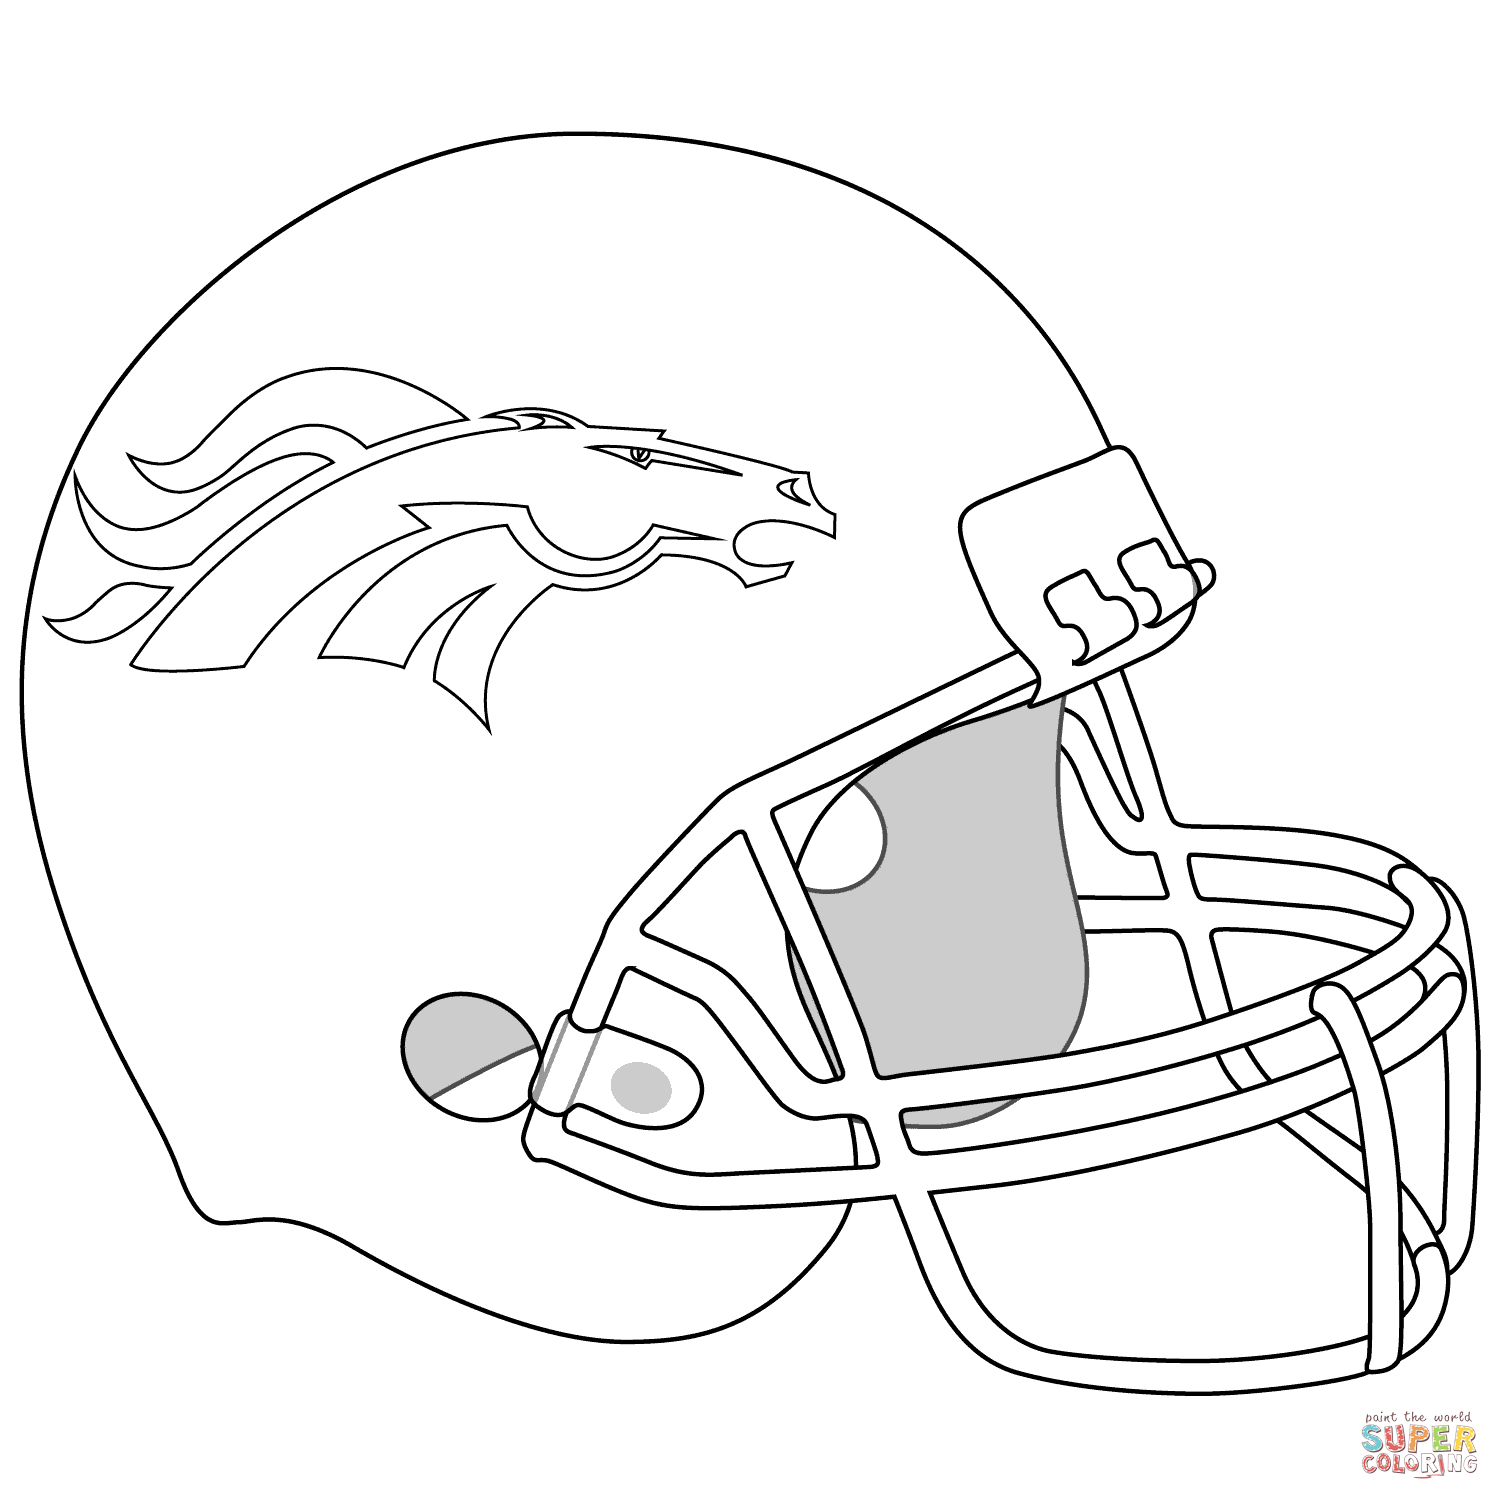 Denver Broncos Helmet | Super Coloring | Anythng | Pinterest